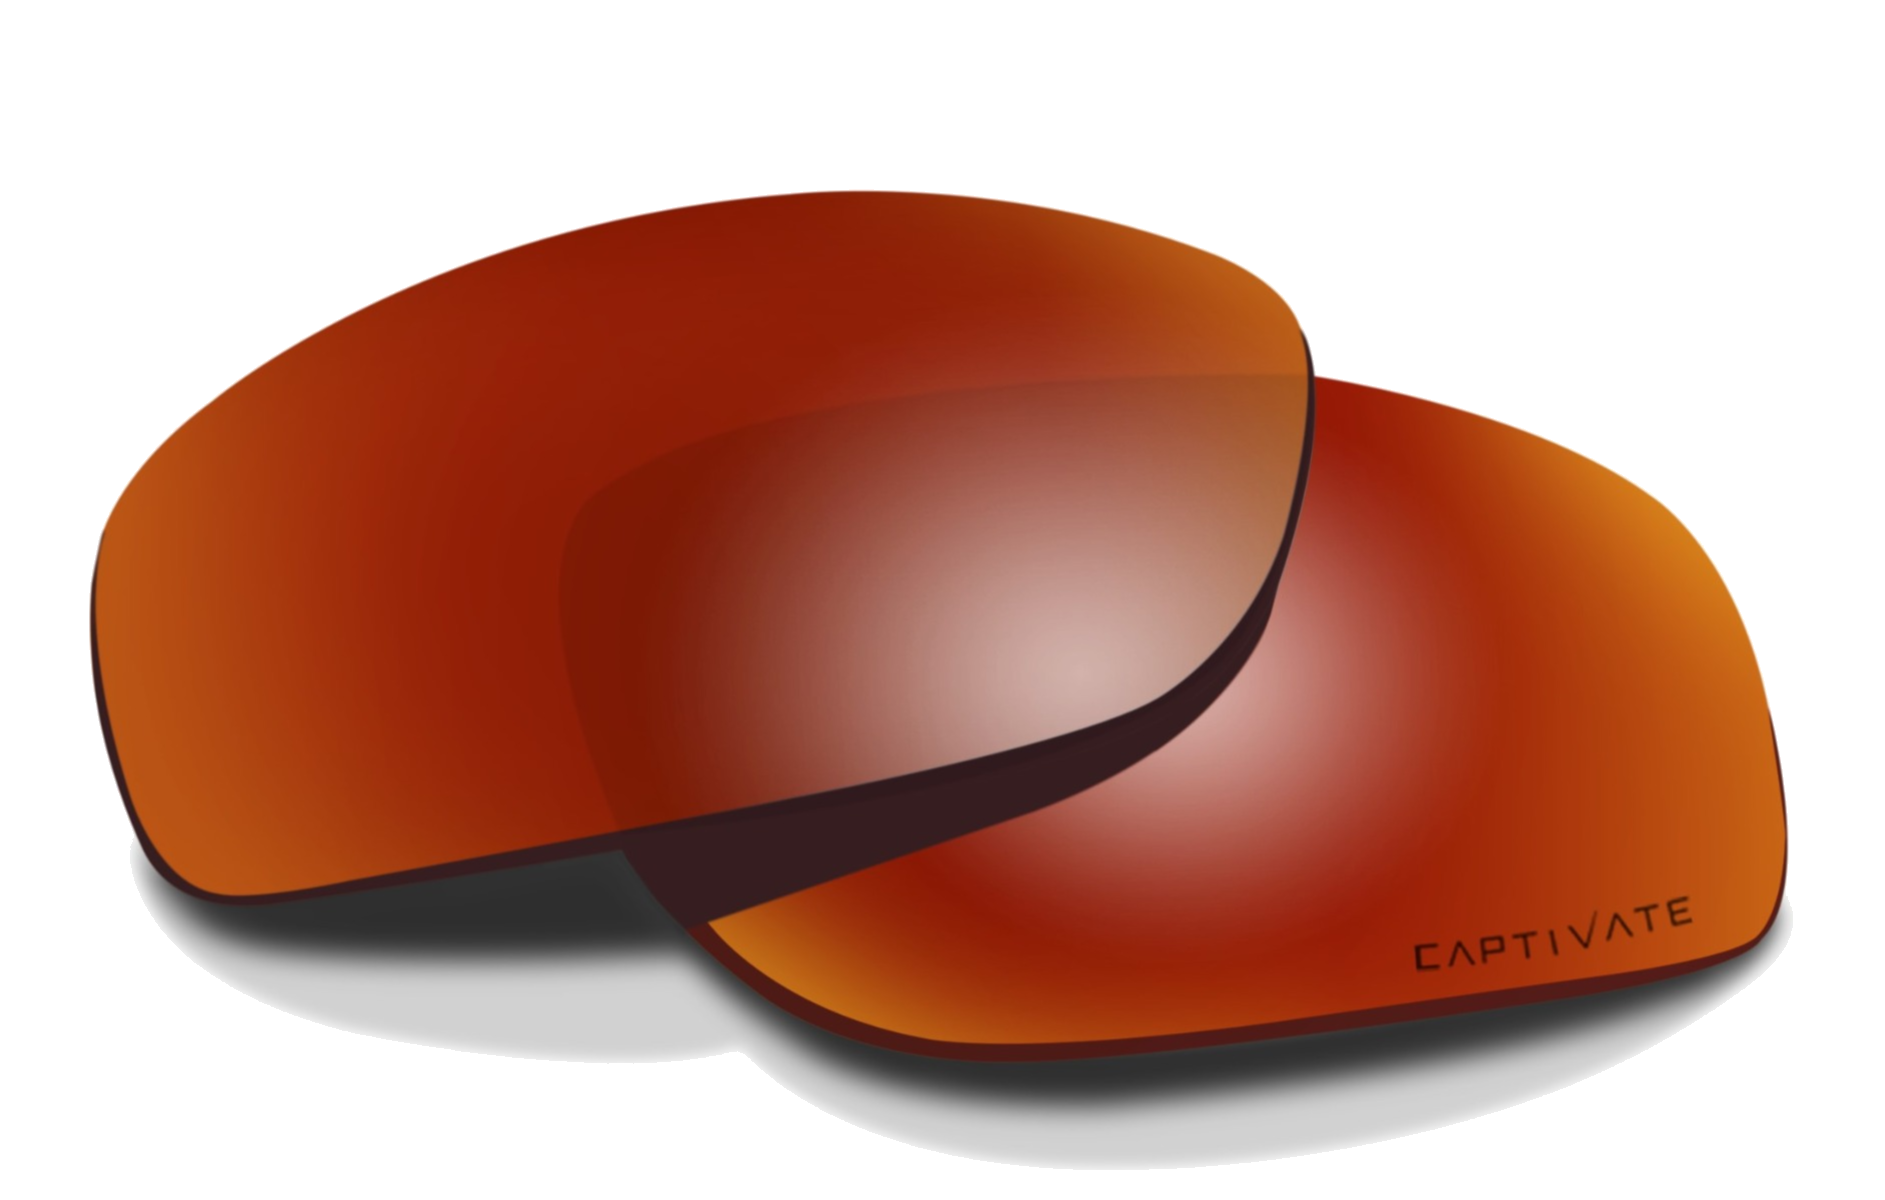 P-17 CAPTIVATE™ Polarized Lenses Image